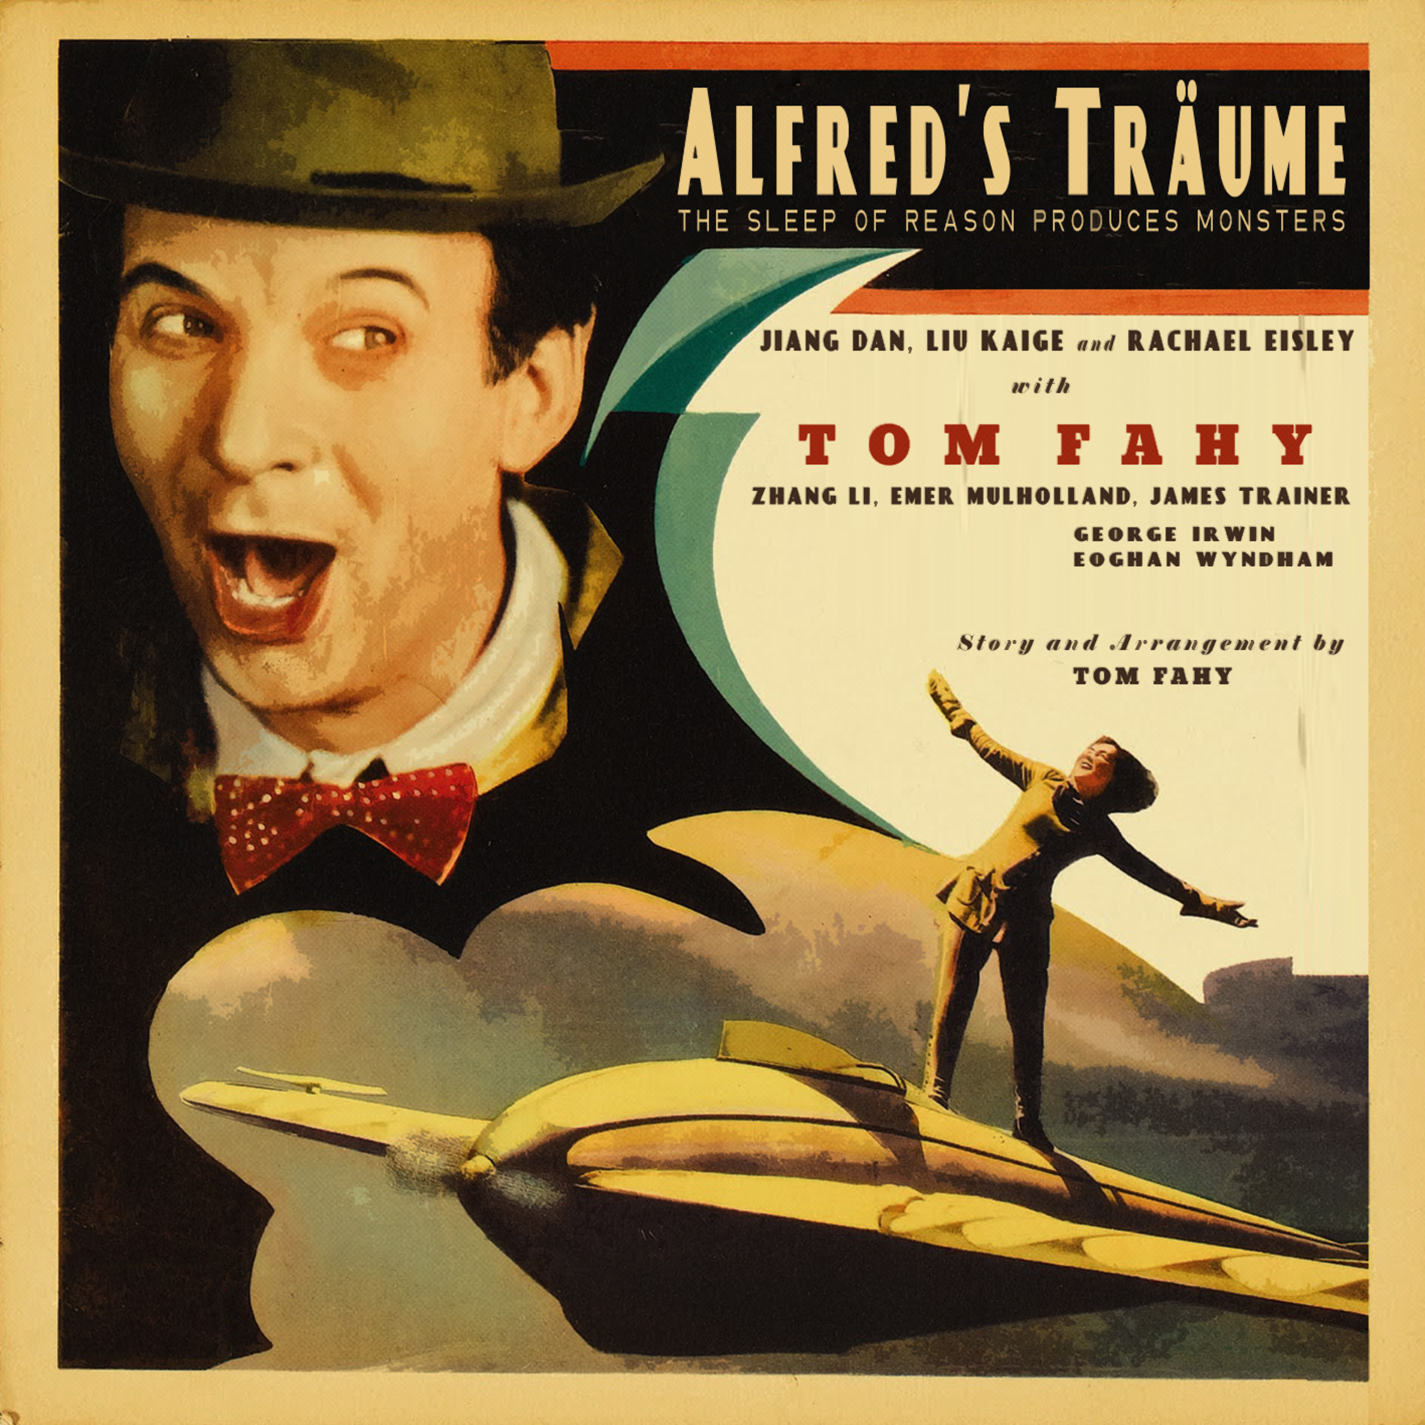 Alfred's Traume by Tom Fahy